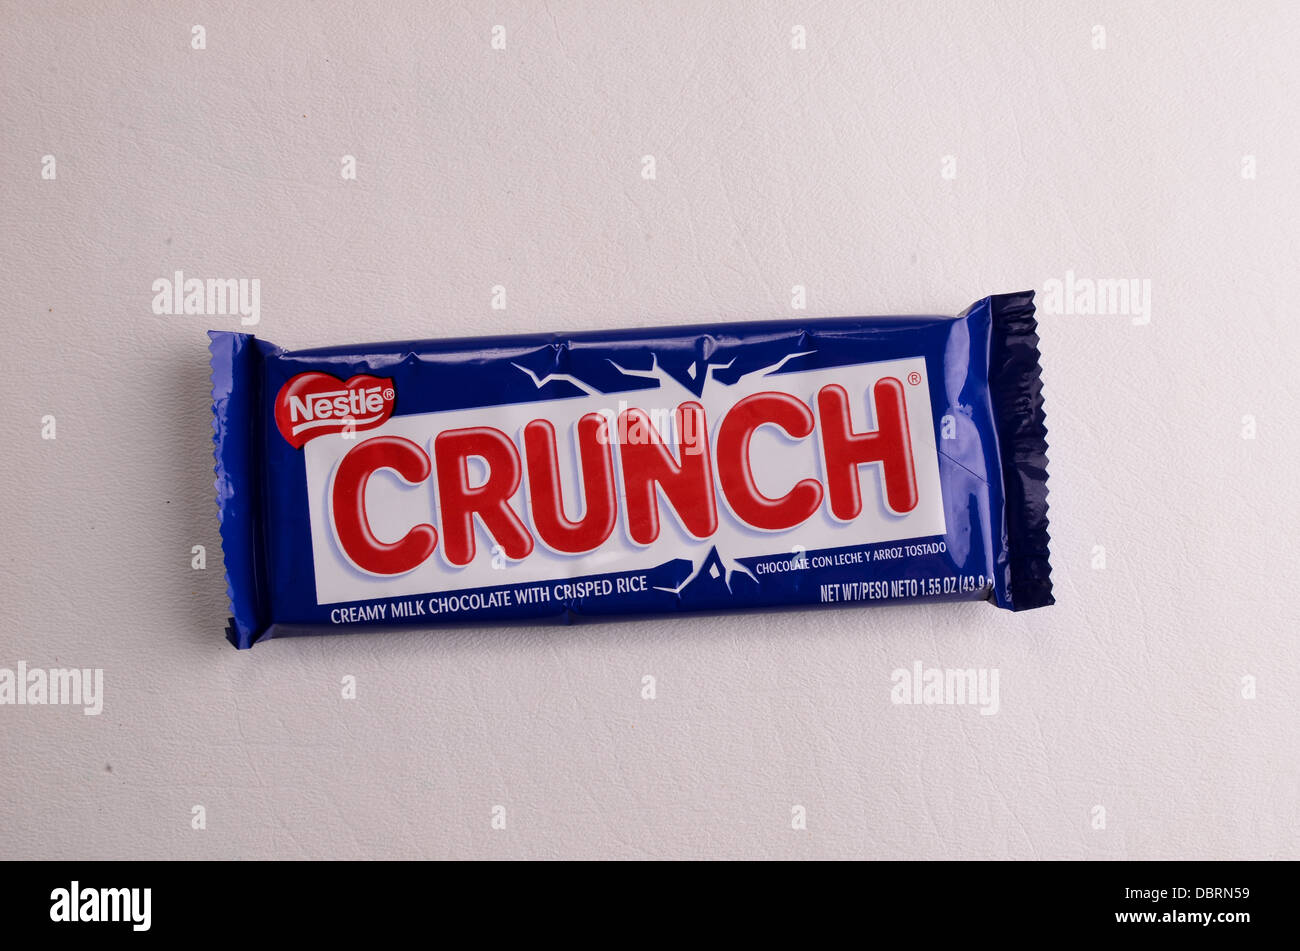 nestle crunch marketing plan essay Evaluate the strengths and weaknesses of each alternative if nestle was to offer a new additive to their chocolate consumers will either like it or not like it, but if a consumer does not like this product they may already like a previous product they offer.